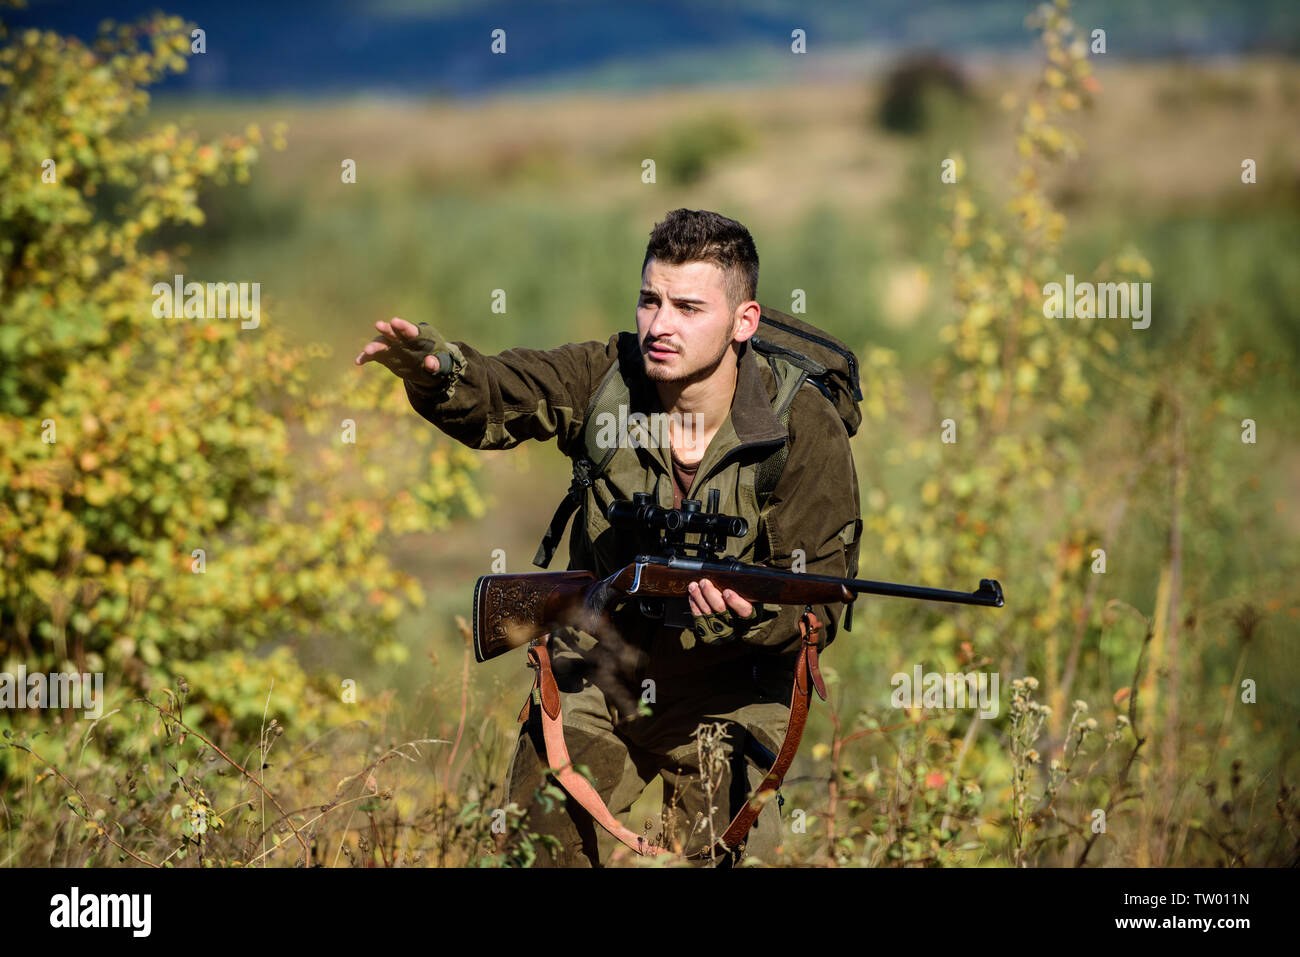 Hunter hold rifle. Man wear camouflage clothes nature background. Hunting permit. Hunting equipment for professionals. Hunting is brutal masculine hobby. Bearded serious hunter spend leisure hunting. - Stock Image